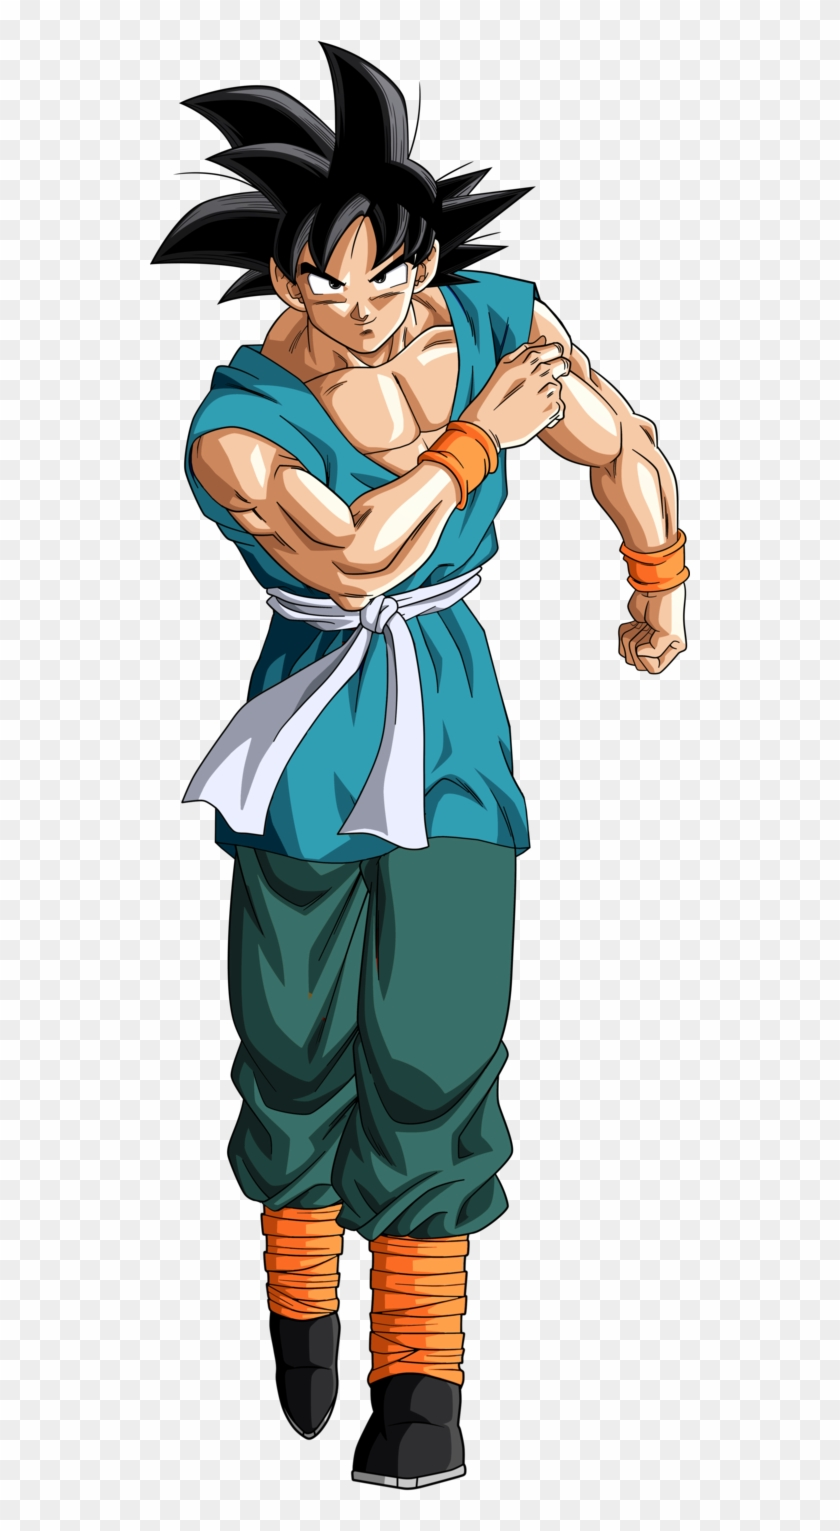 Why Do People Like Goku And Vegeta's Rof Clothes So - Dragon Ball Goku End Of Z Clipart #4327405